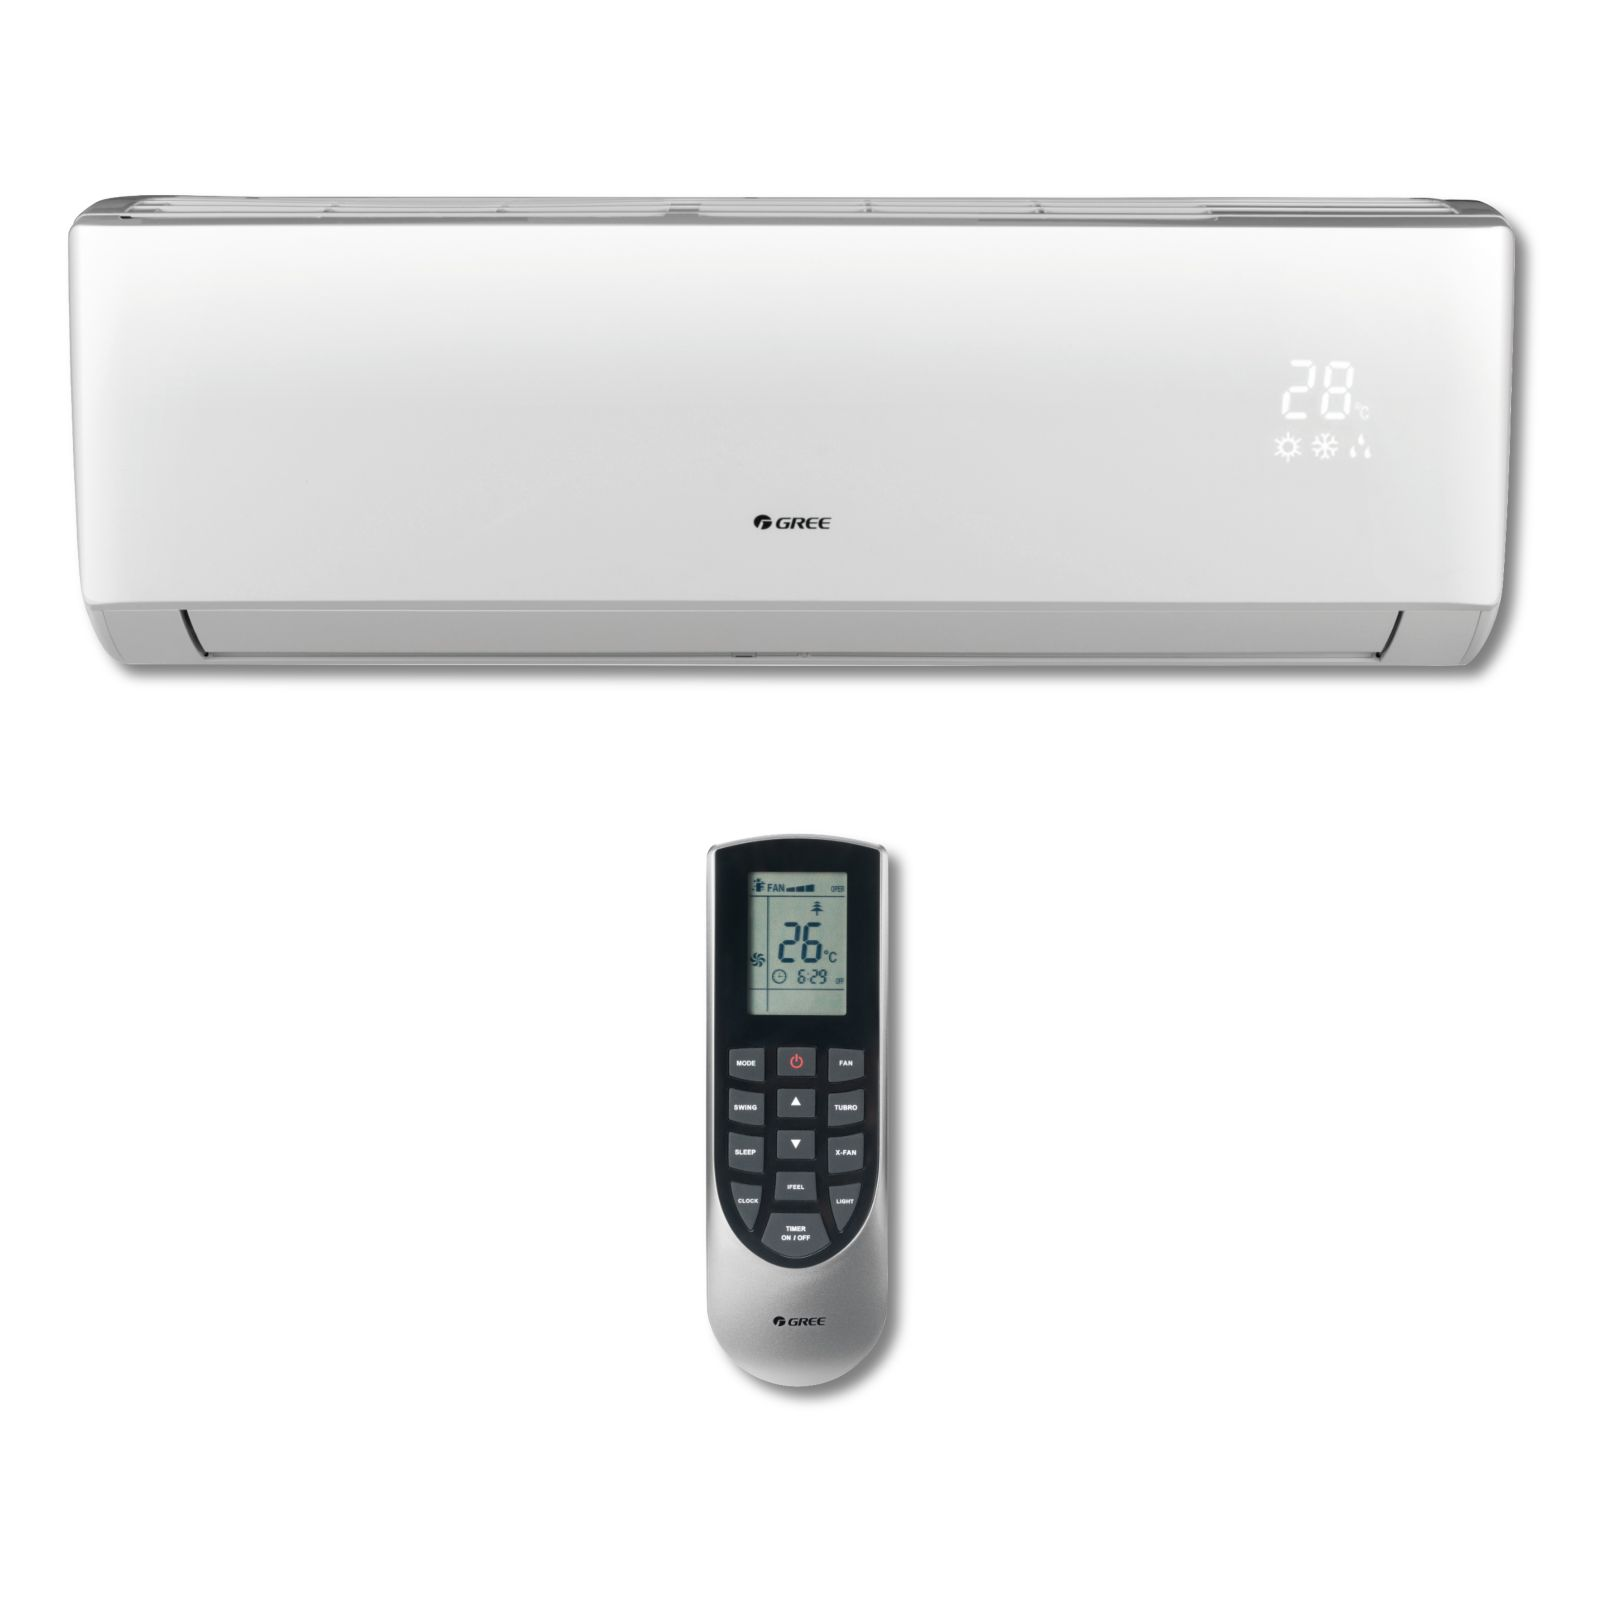 GREE VIR12HP230V1AH - Vireo 12,000 BTU Wall Mounted Inverter